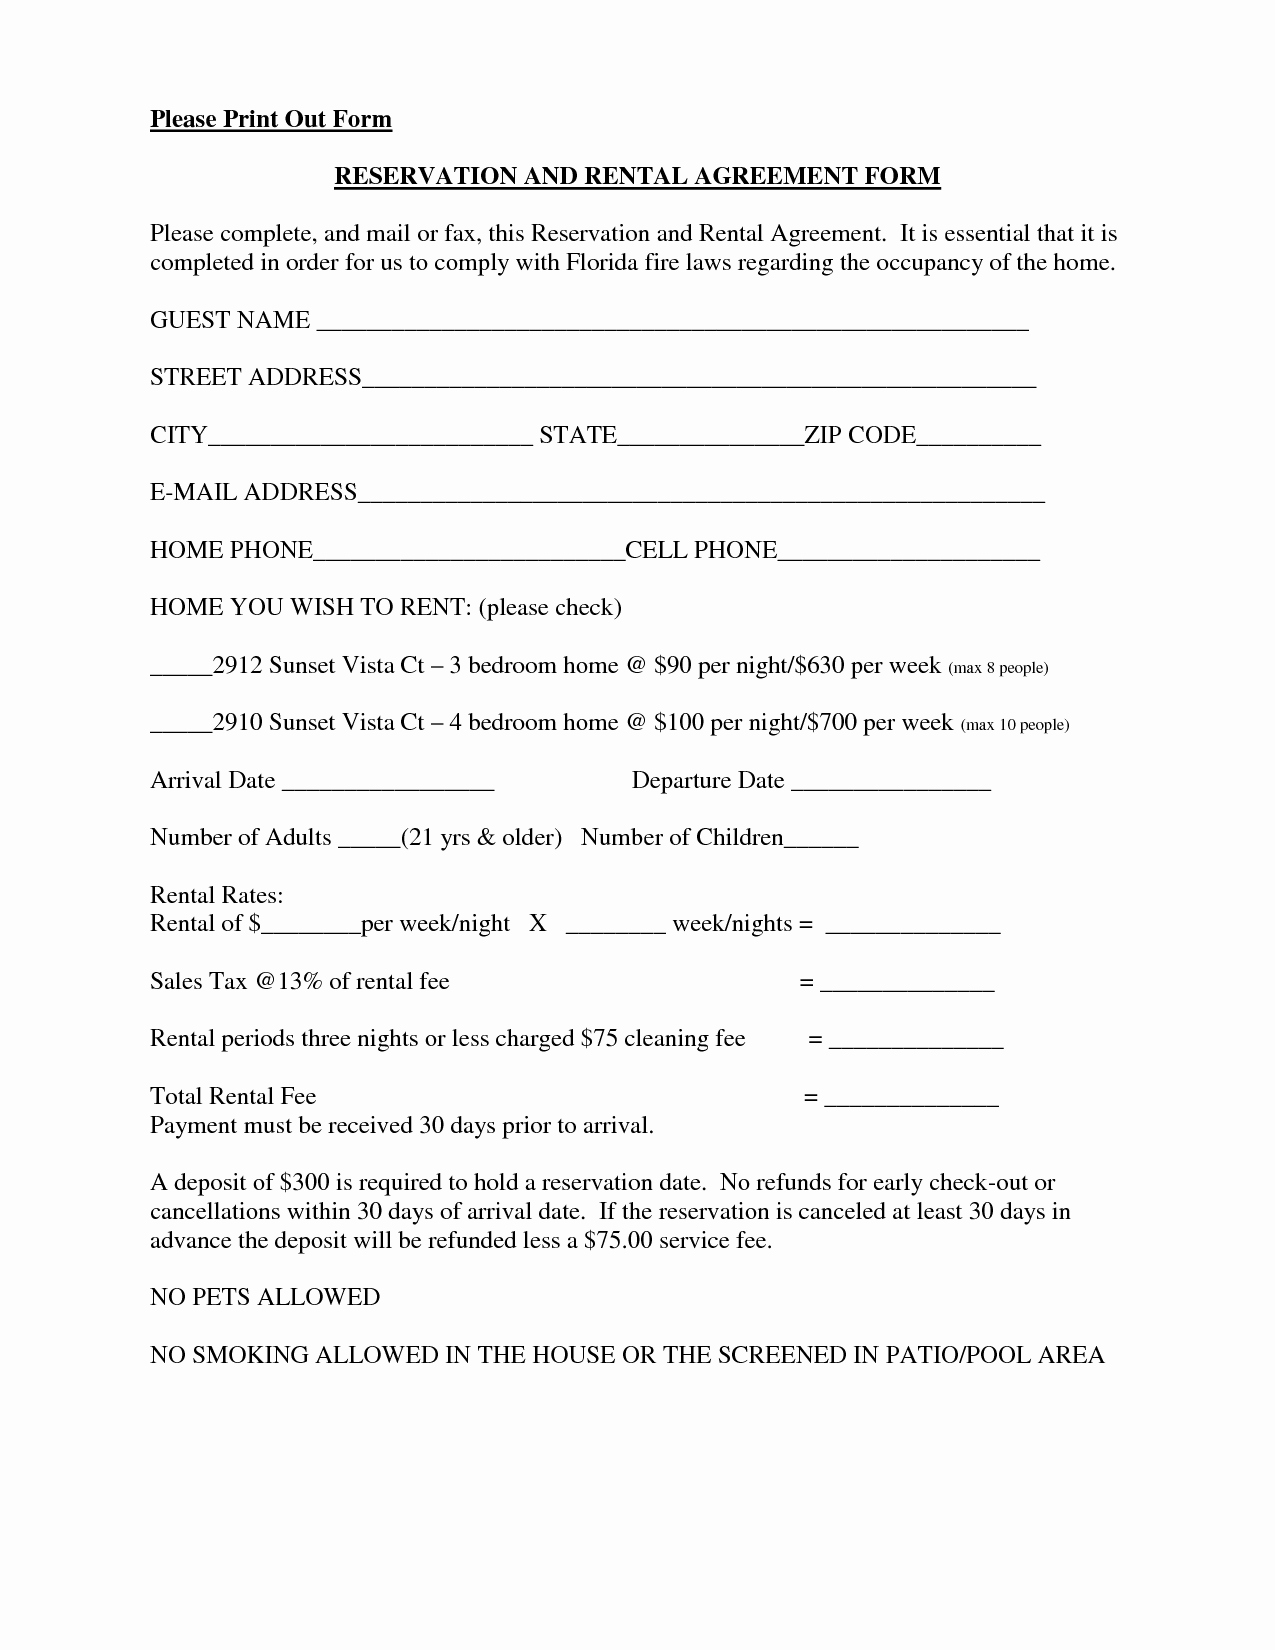 Free Printable Rental Agreement Fresh Lease Agreement form Free Printable Documents